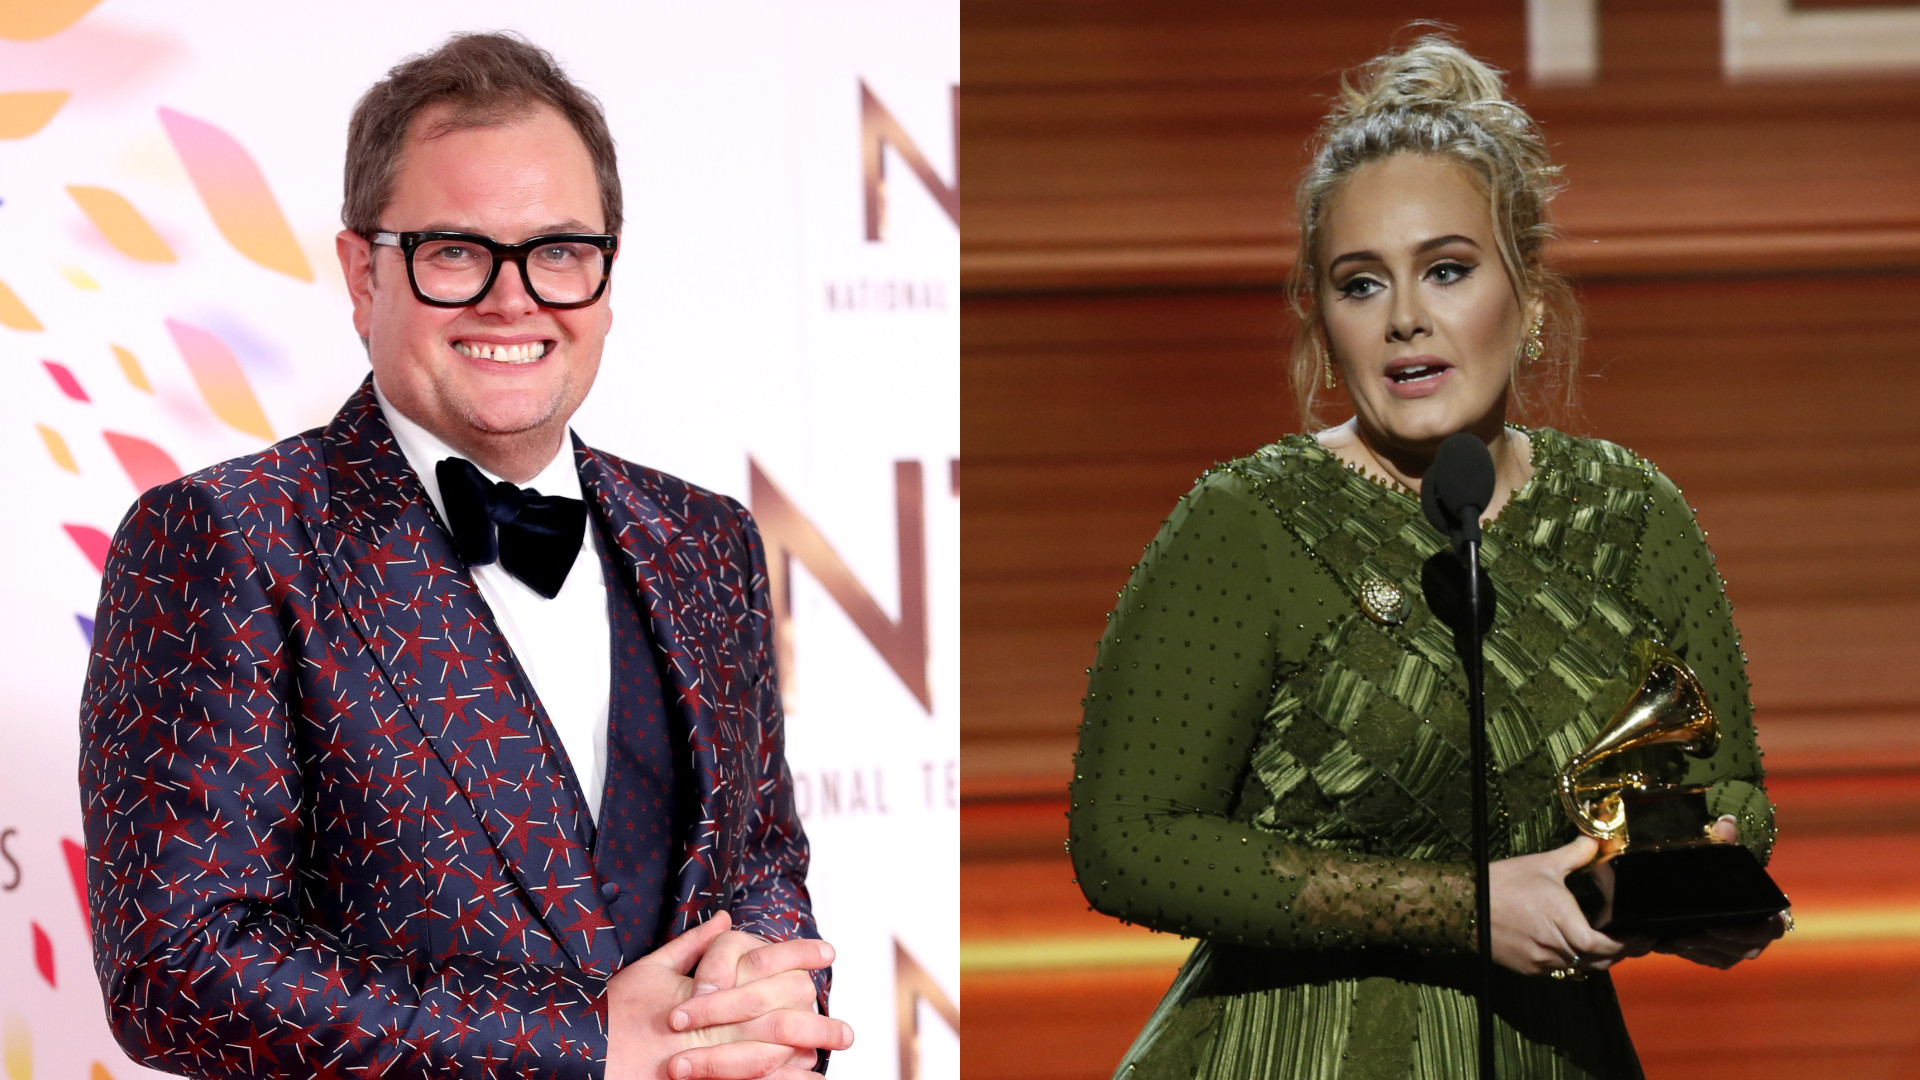 Alan Carr says friend Adele once suggested he stay in a hotel instead of at her luxury home